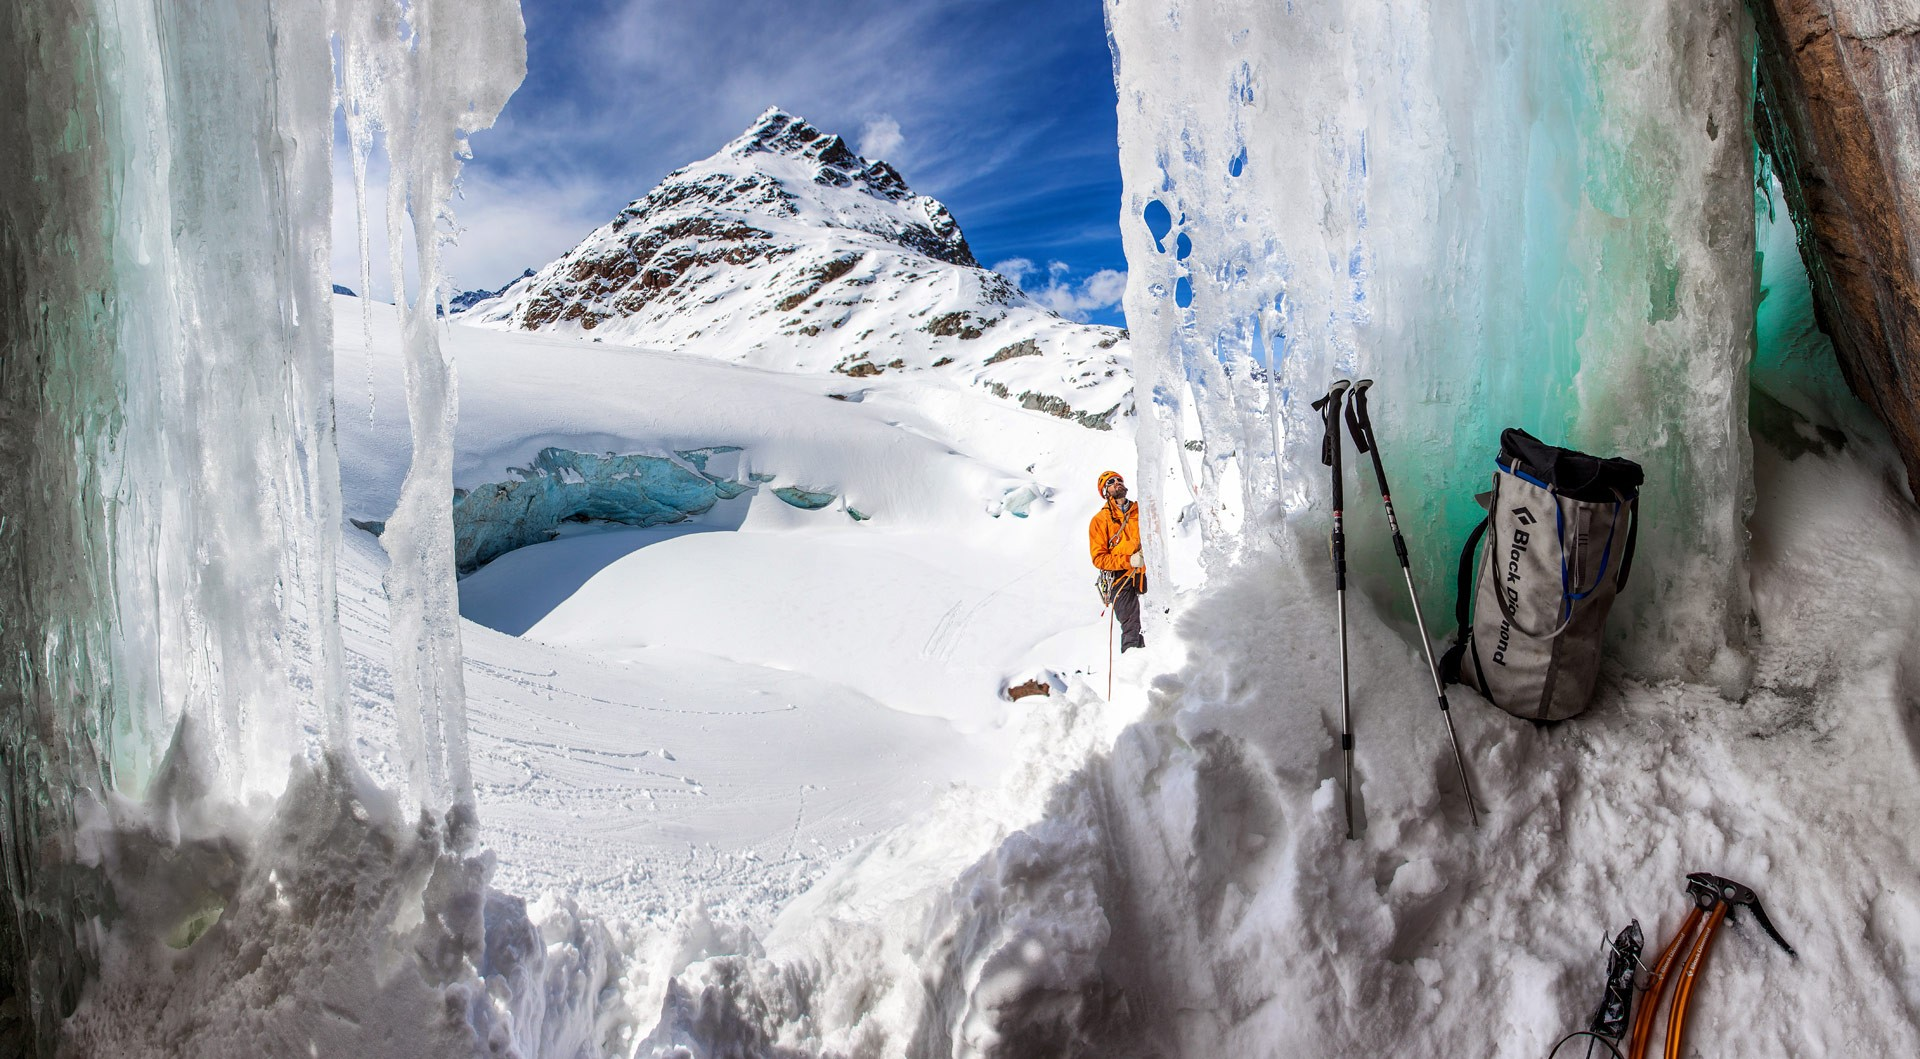 Ice climbing in the ice world at Pitztaler Gletscher